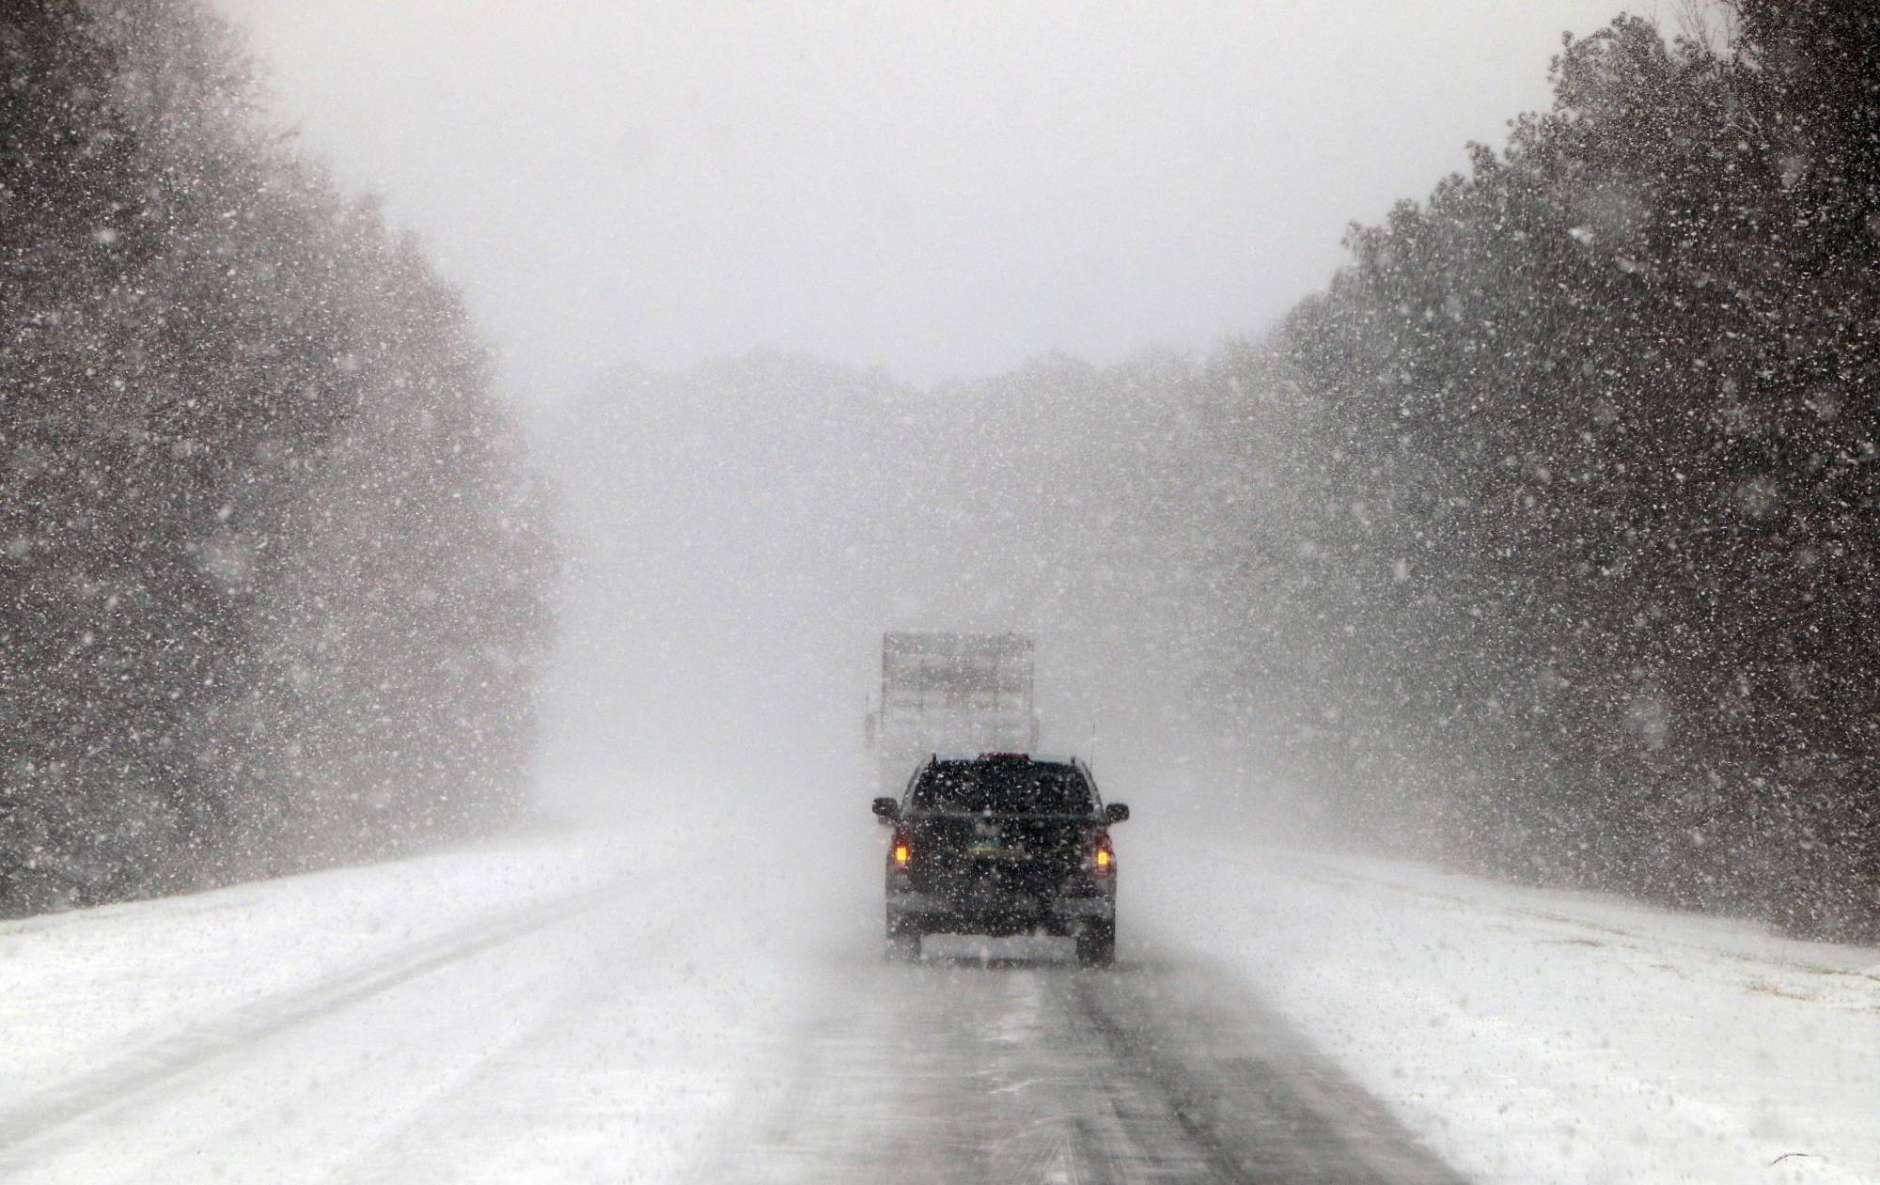 Vehicles move along a snow and ice covered Interstate 26, near Savannah, Ga., Wednesday, Jan. 3, 2018. A brutal winter storm dumped snow in Tallahassee, Fla., on Wednesday for the first time in nearly three decades before slogging up the Atlantic coast and smacking Southern cities such as Savannah and Charleston, South Carolina, with a rare blast of snow and ice. (AP Photo/Robert Ray)